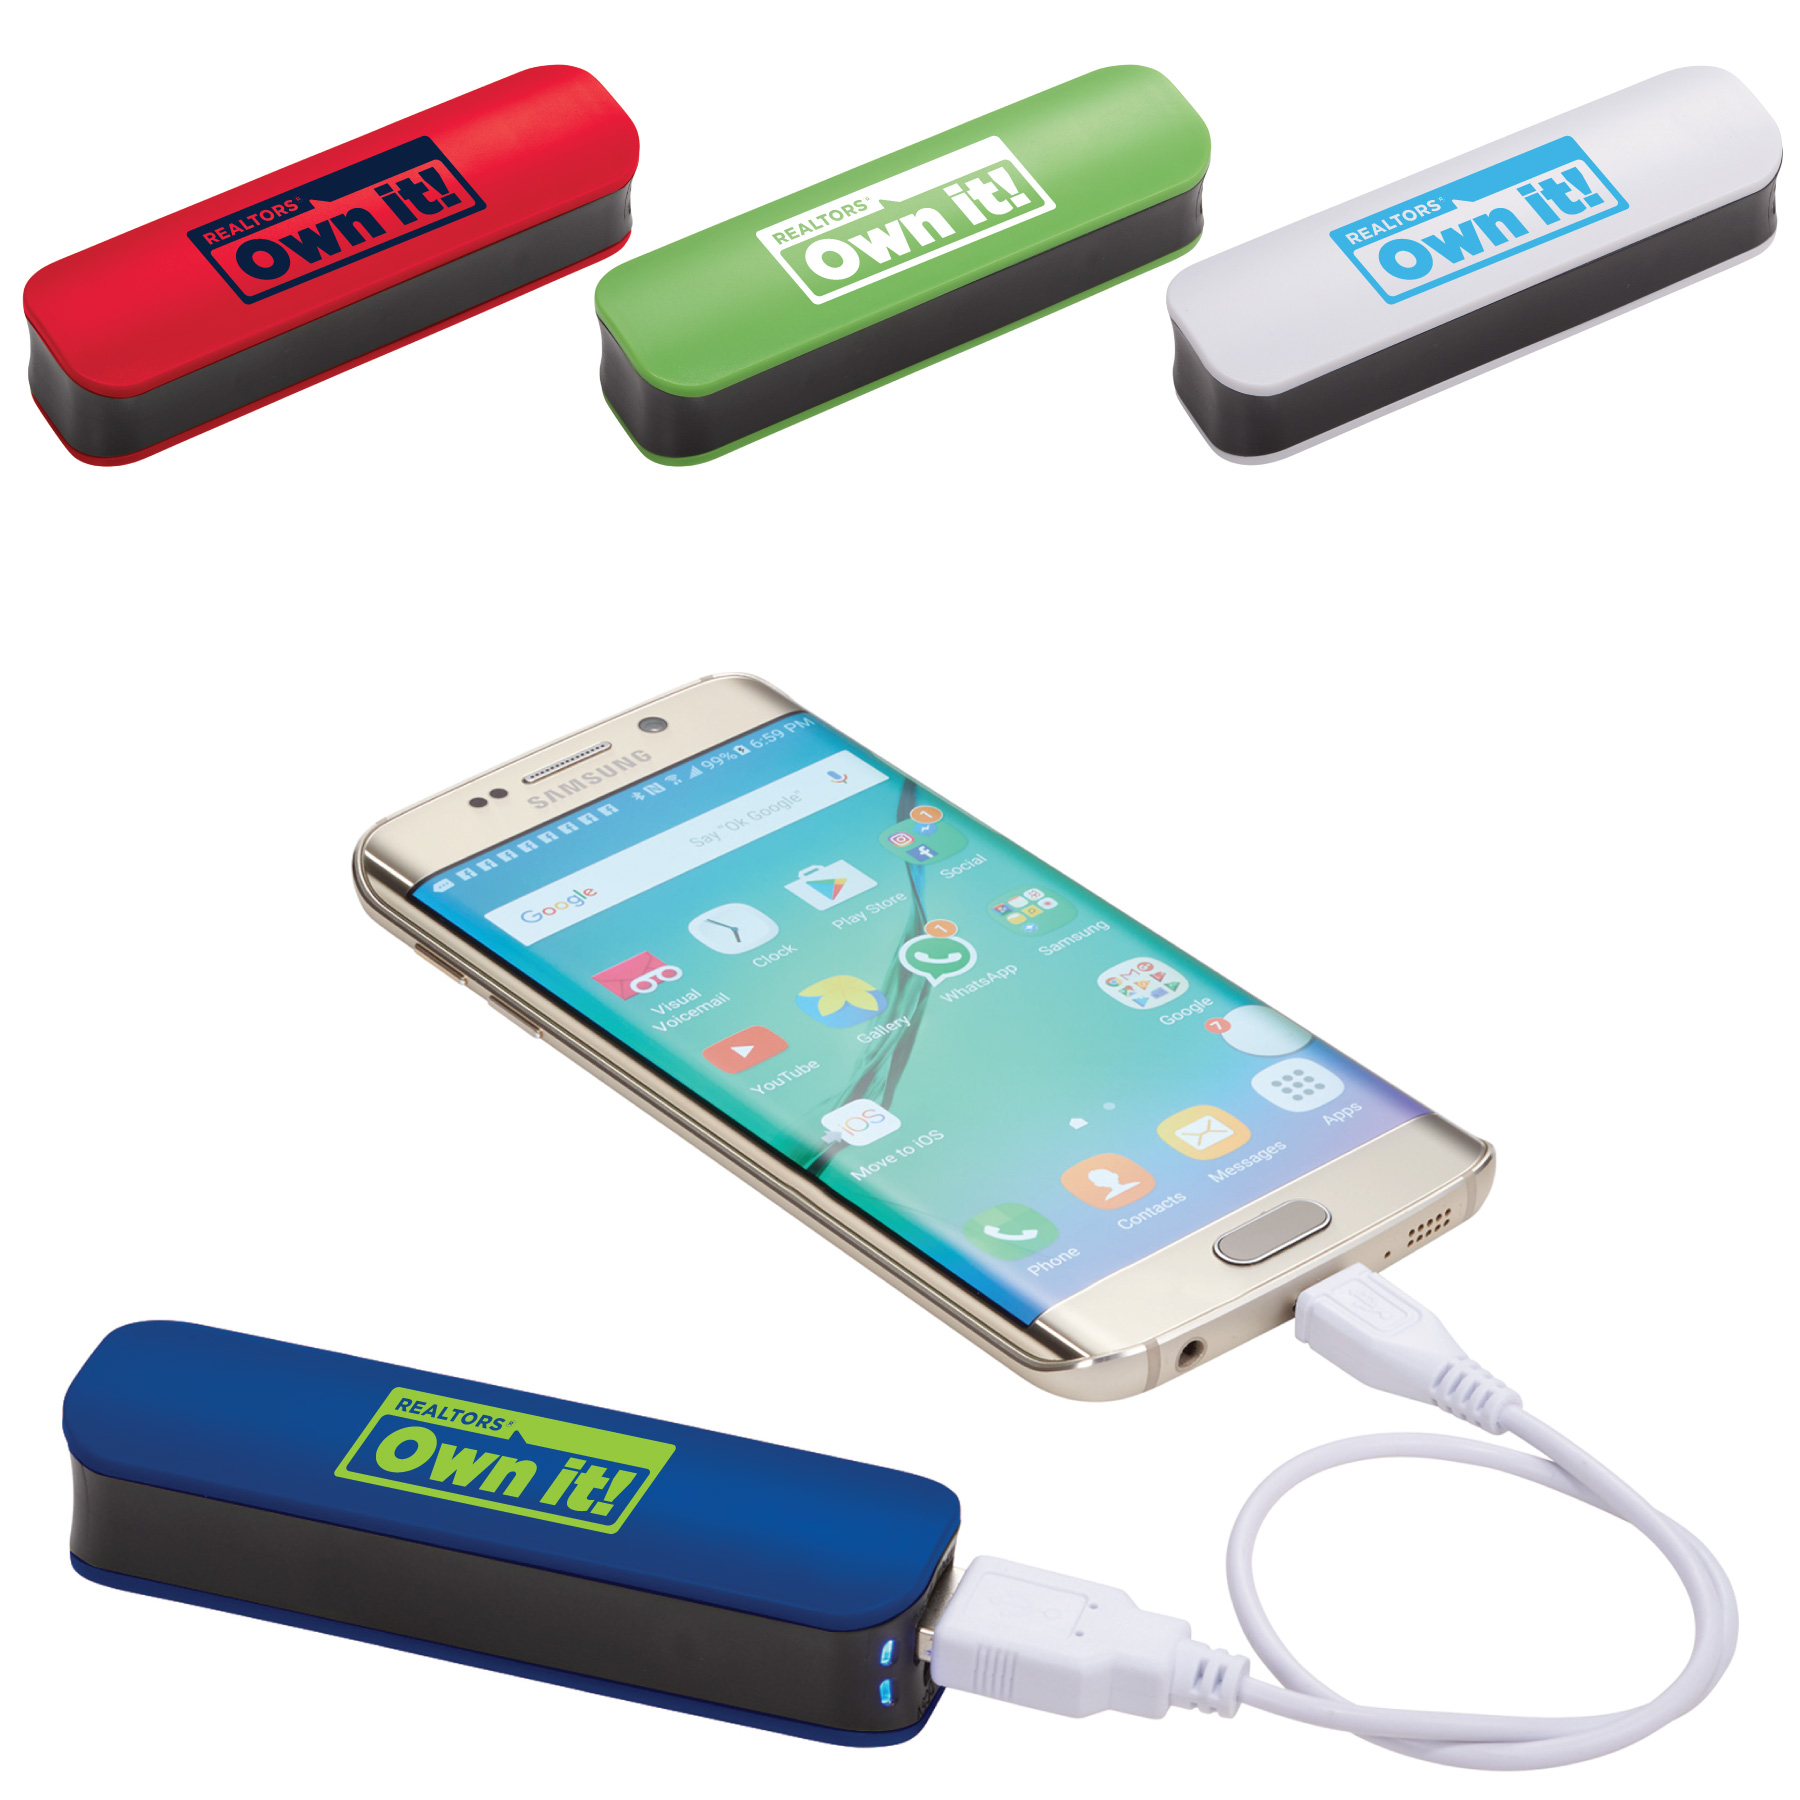 Flash REALTORS® Own It! Power Bank (Special Order) Chargers,Powers,Banks,Batterys,Batteries,Jumps,Charges,Phones,iphones,Cords